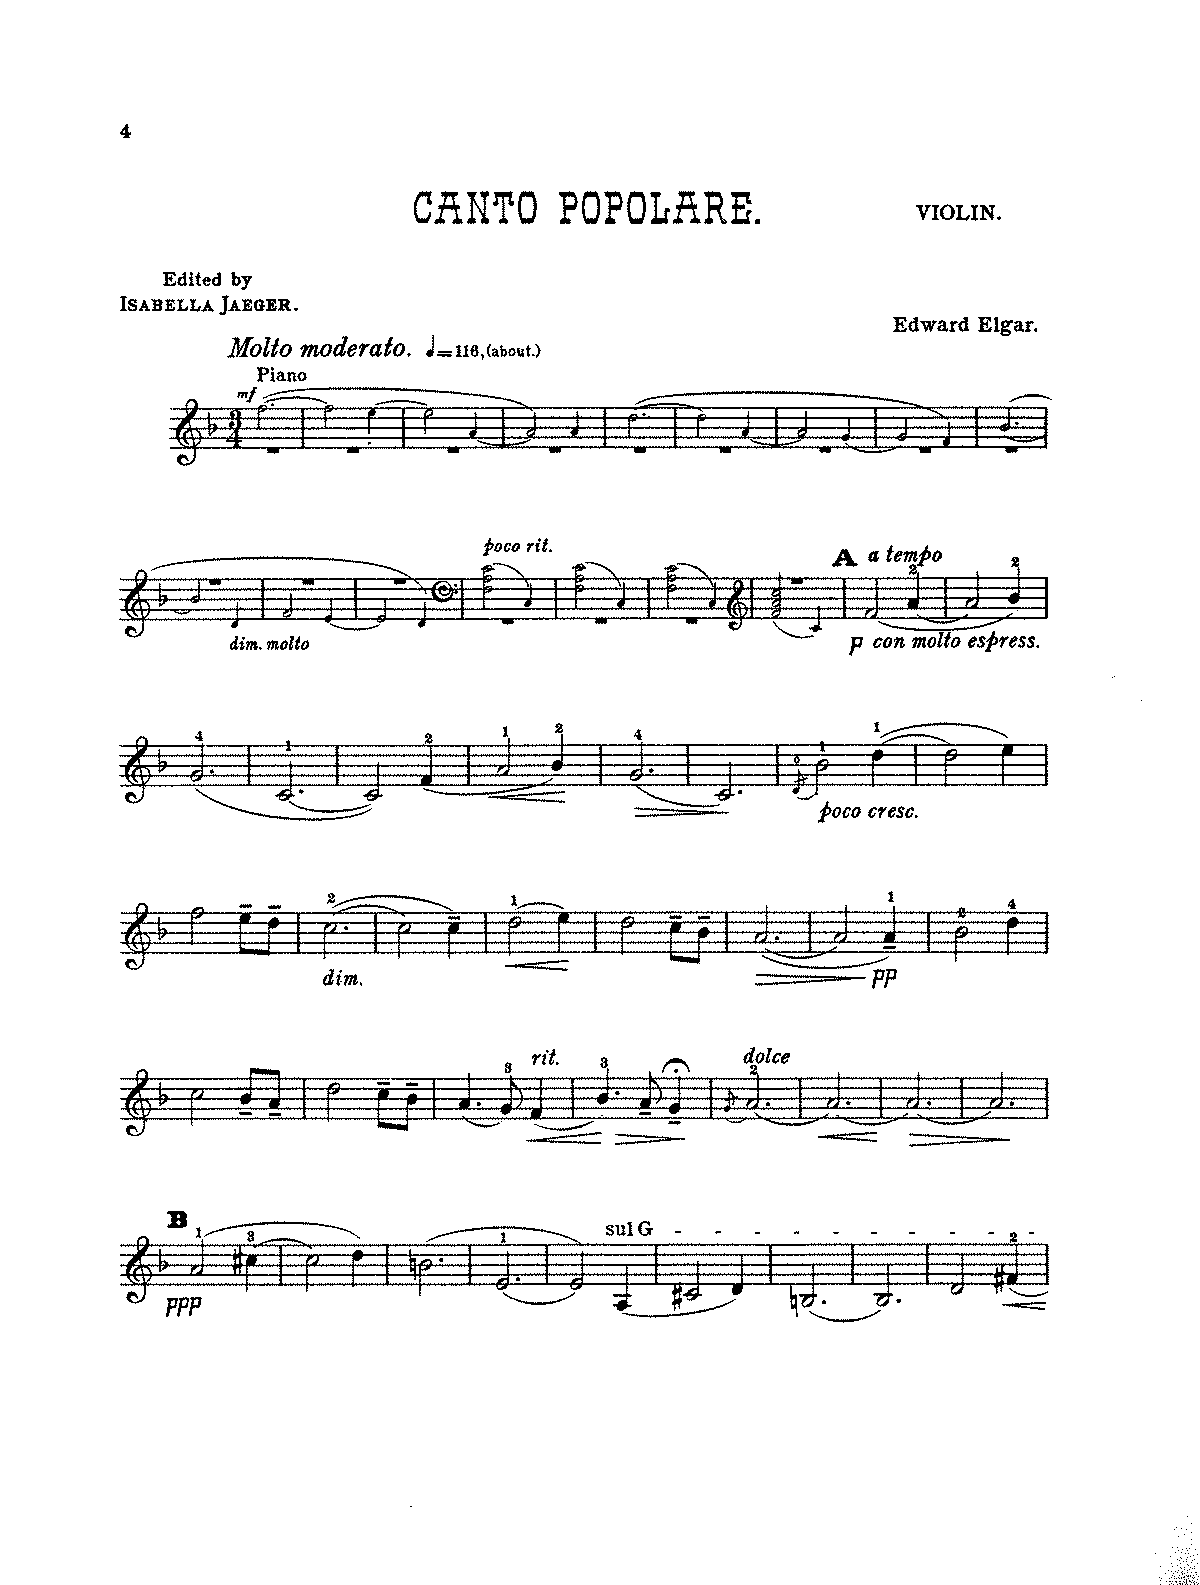 PMLP46380-Elgar - In the South - Canto Popolare (trans. violin and piano).pdf